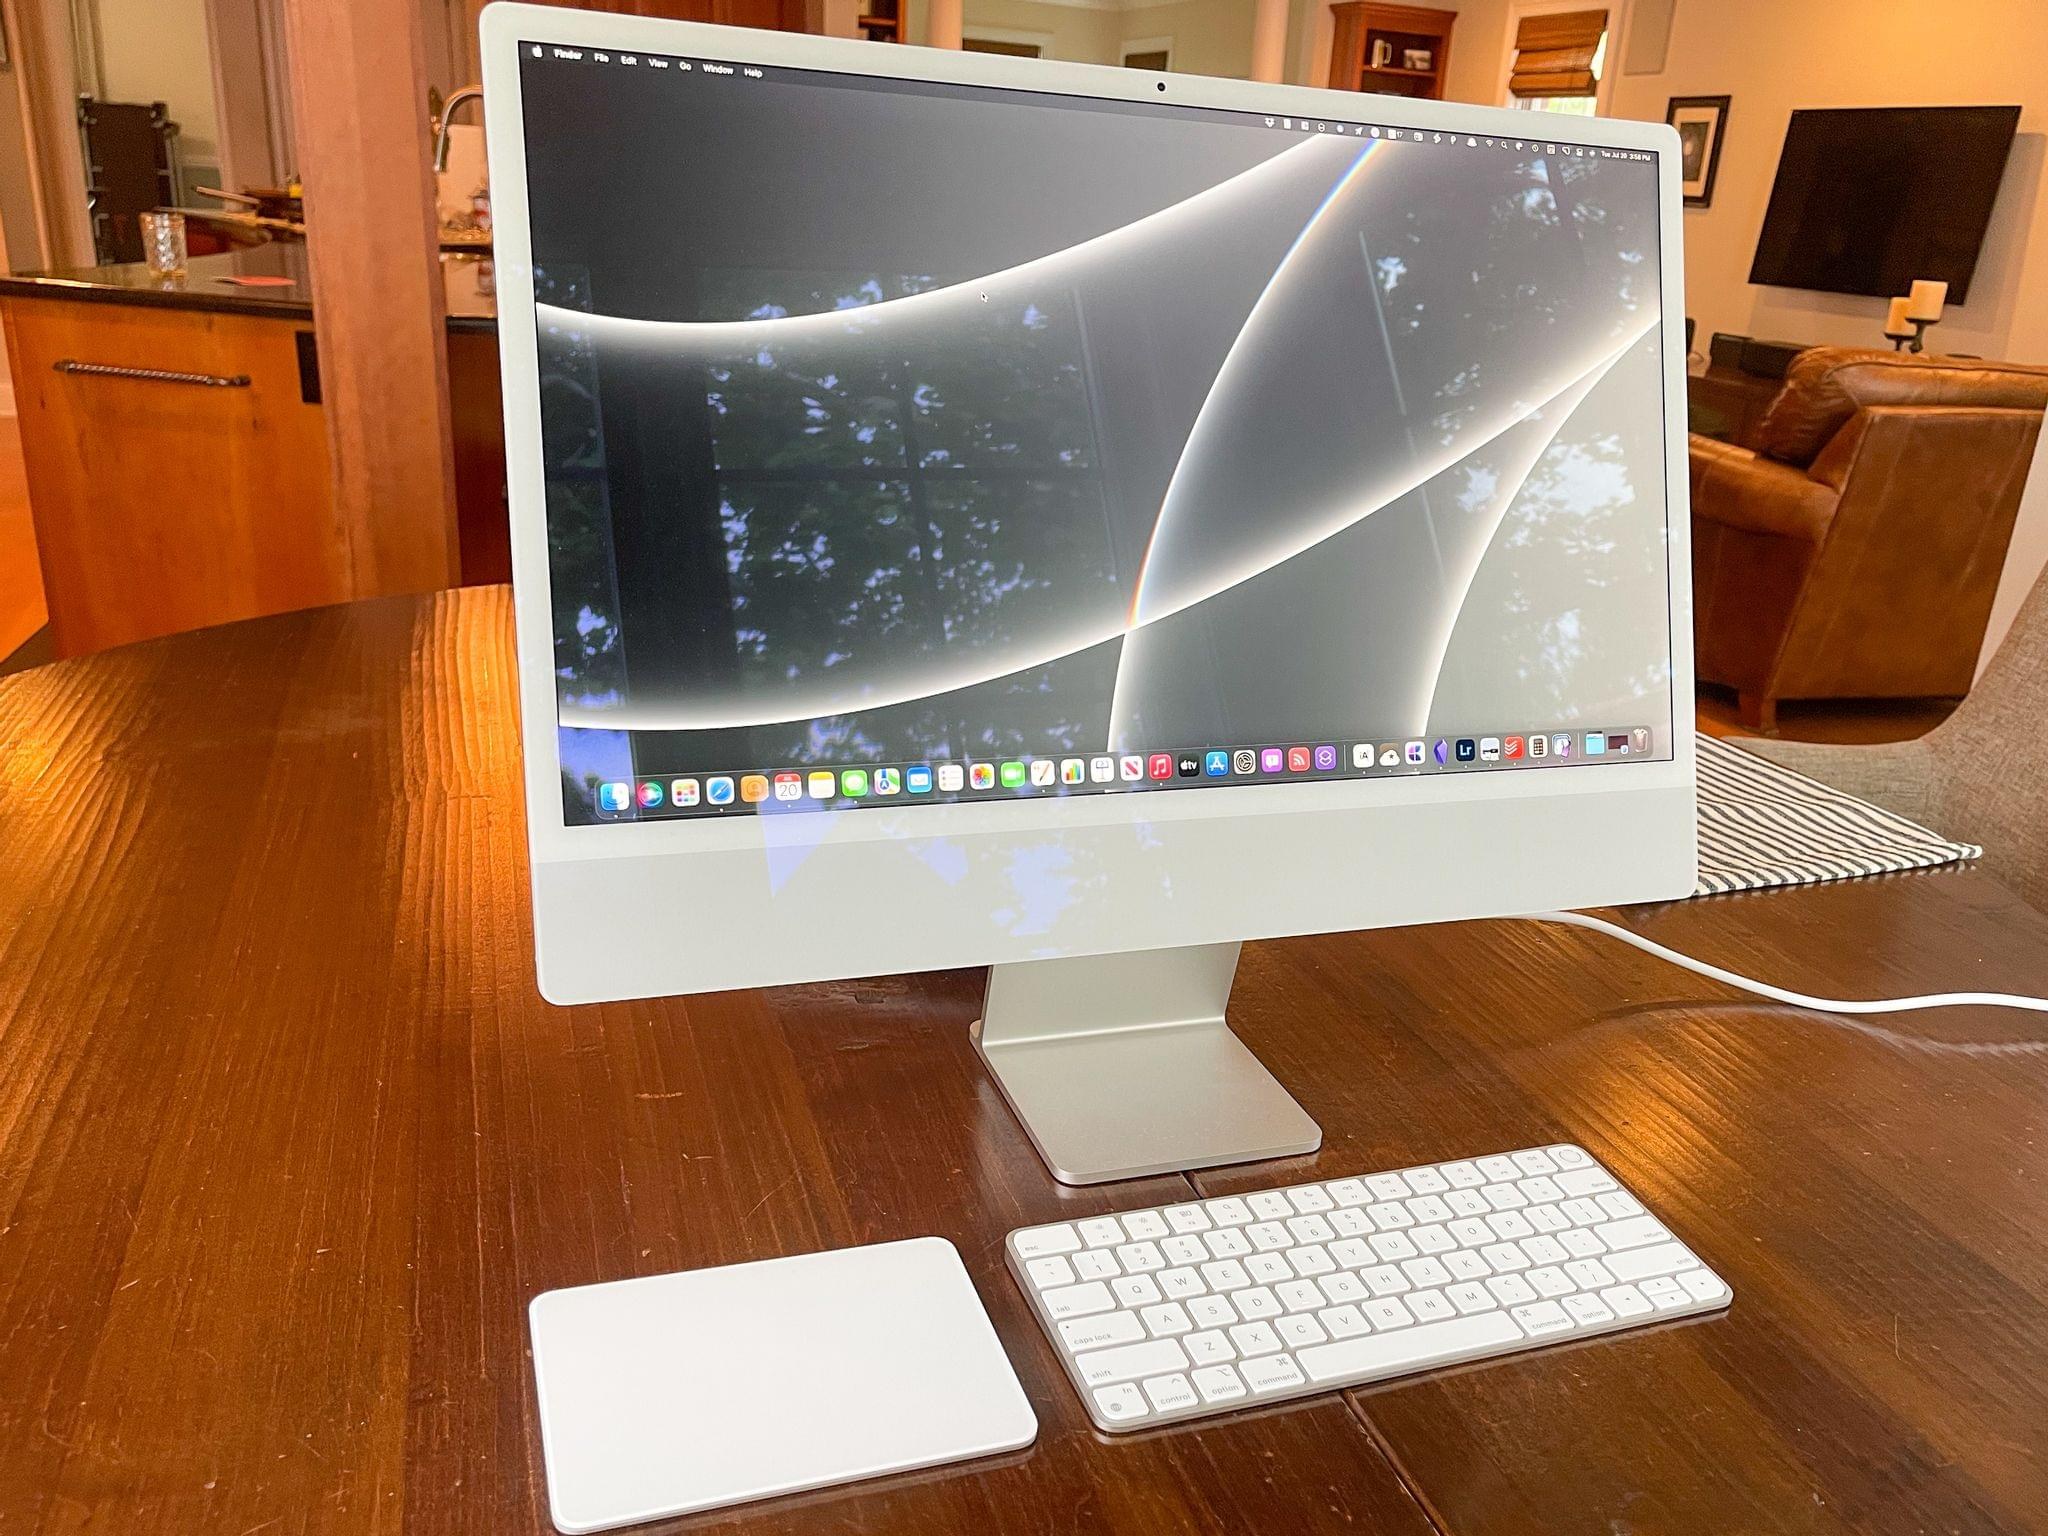 I first set up the iMac at my kitchen table.